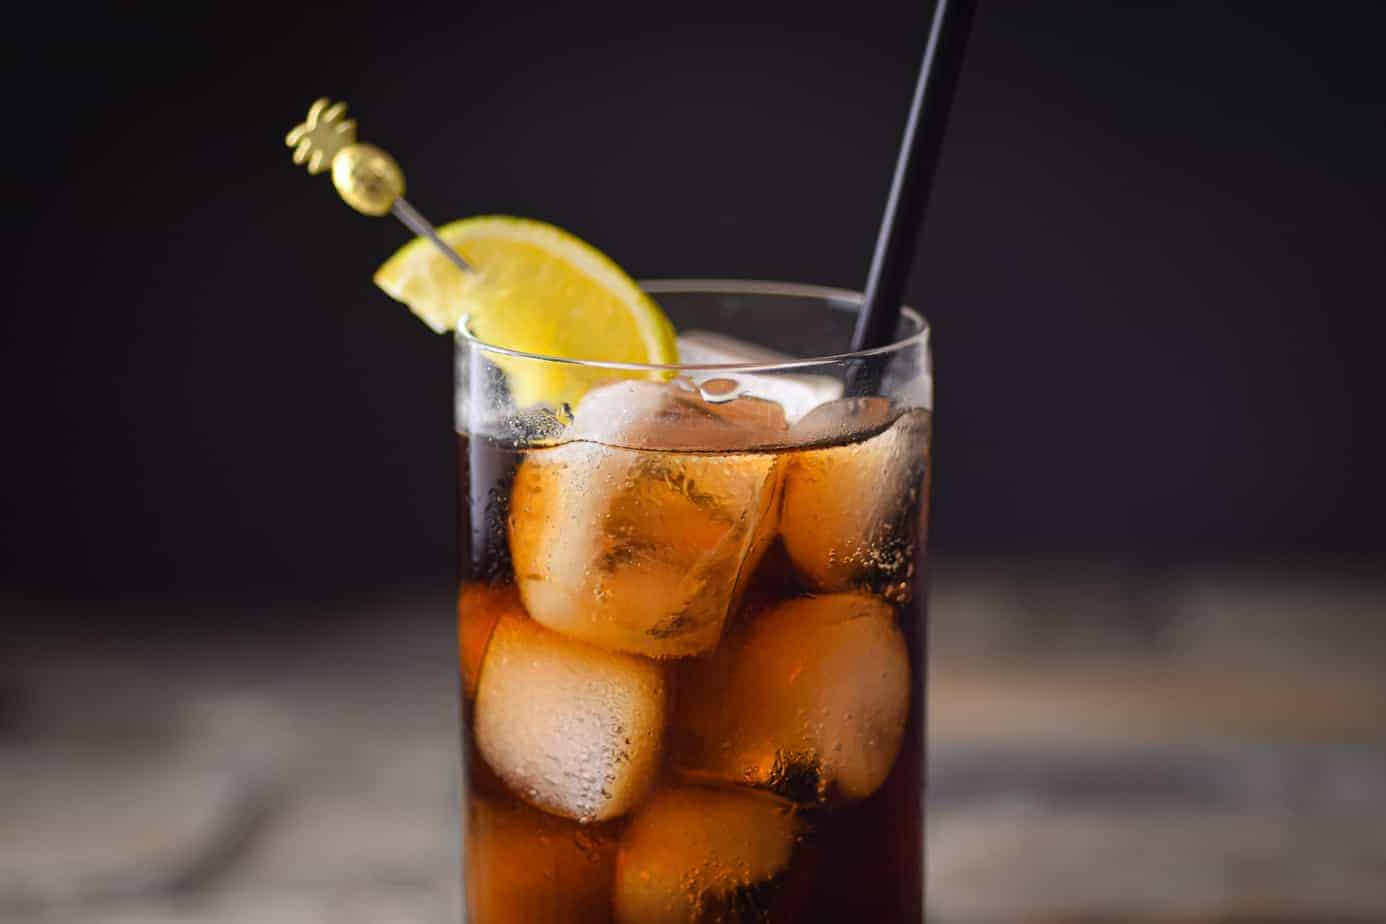 Keto-Friendly Long Island Iced Tea